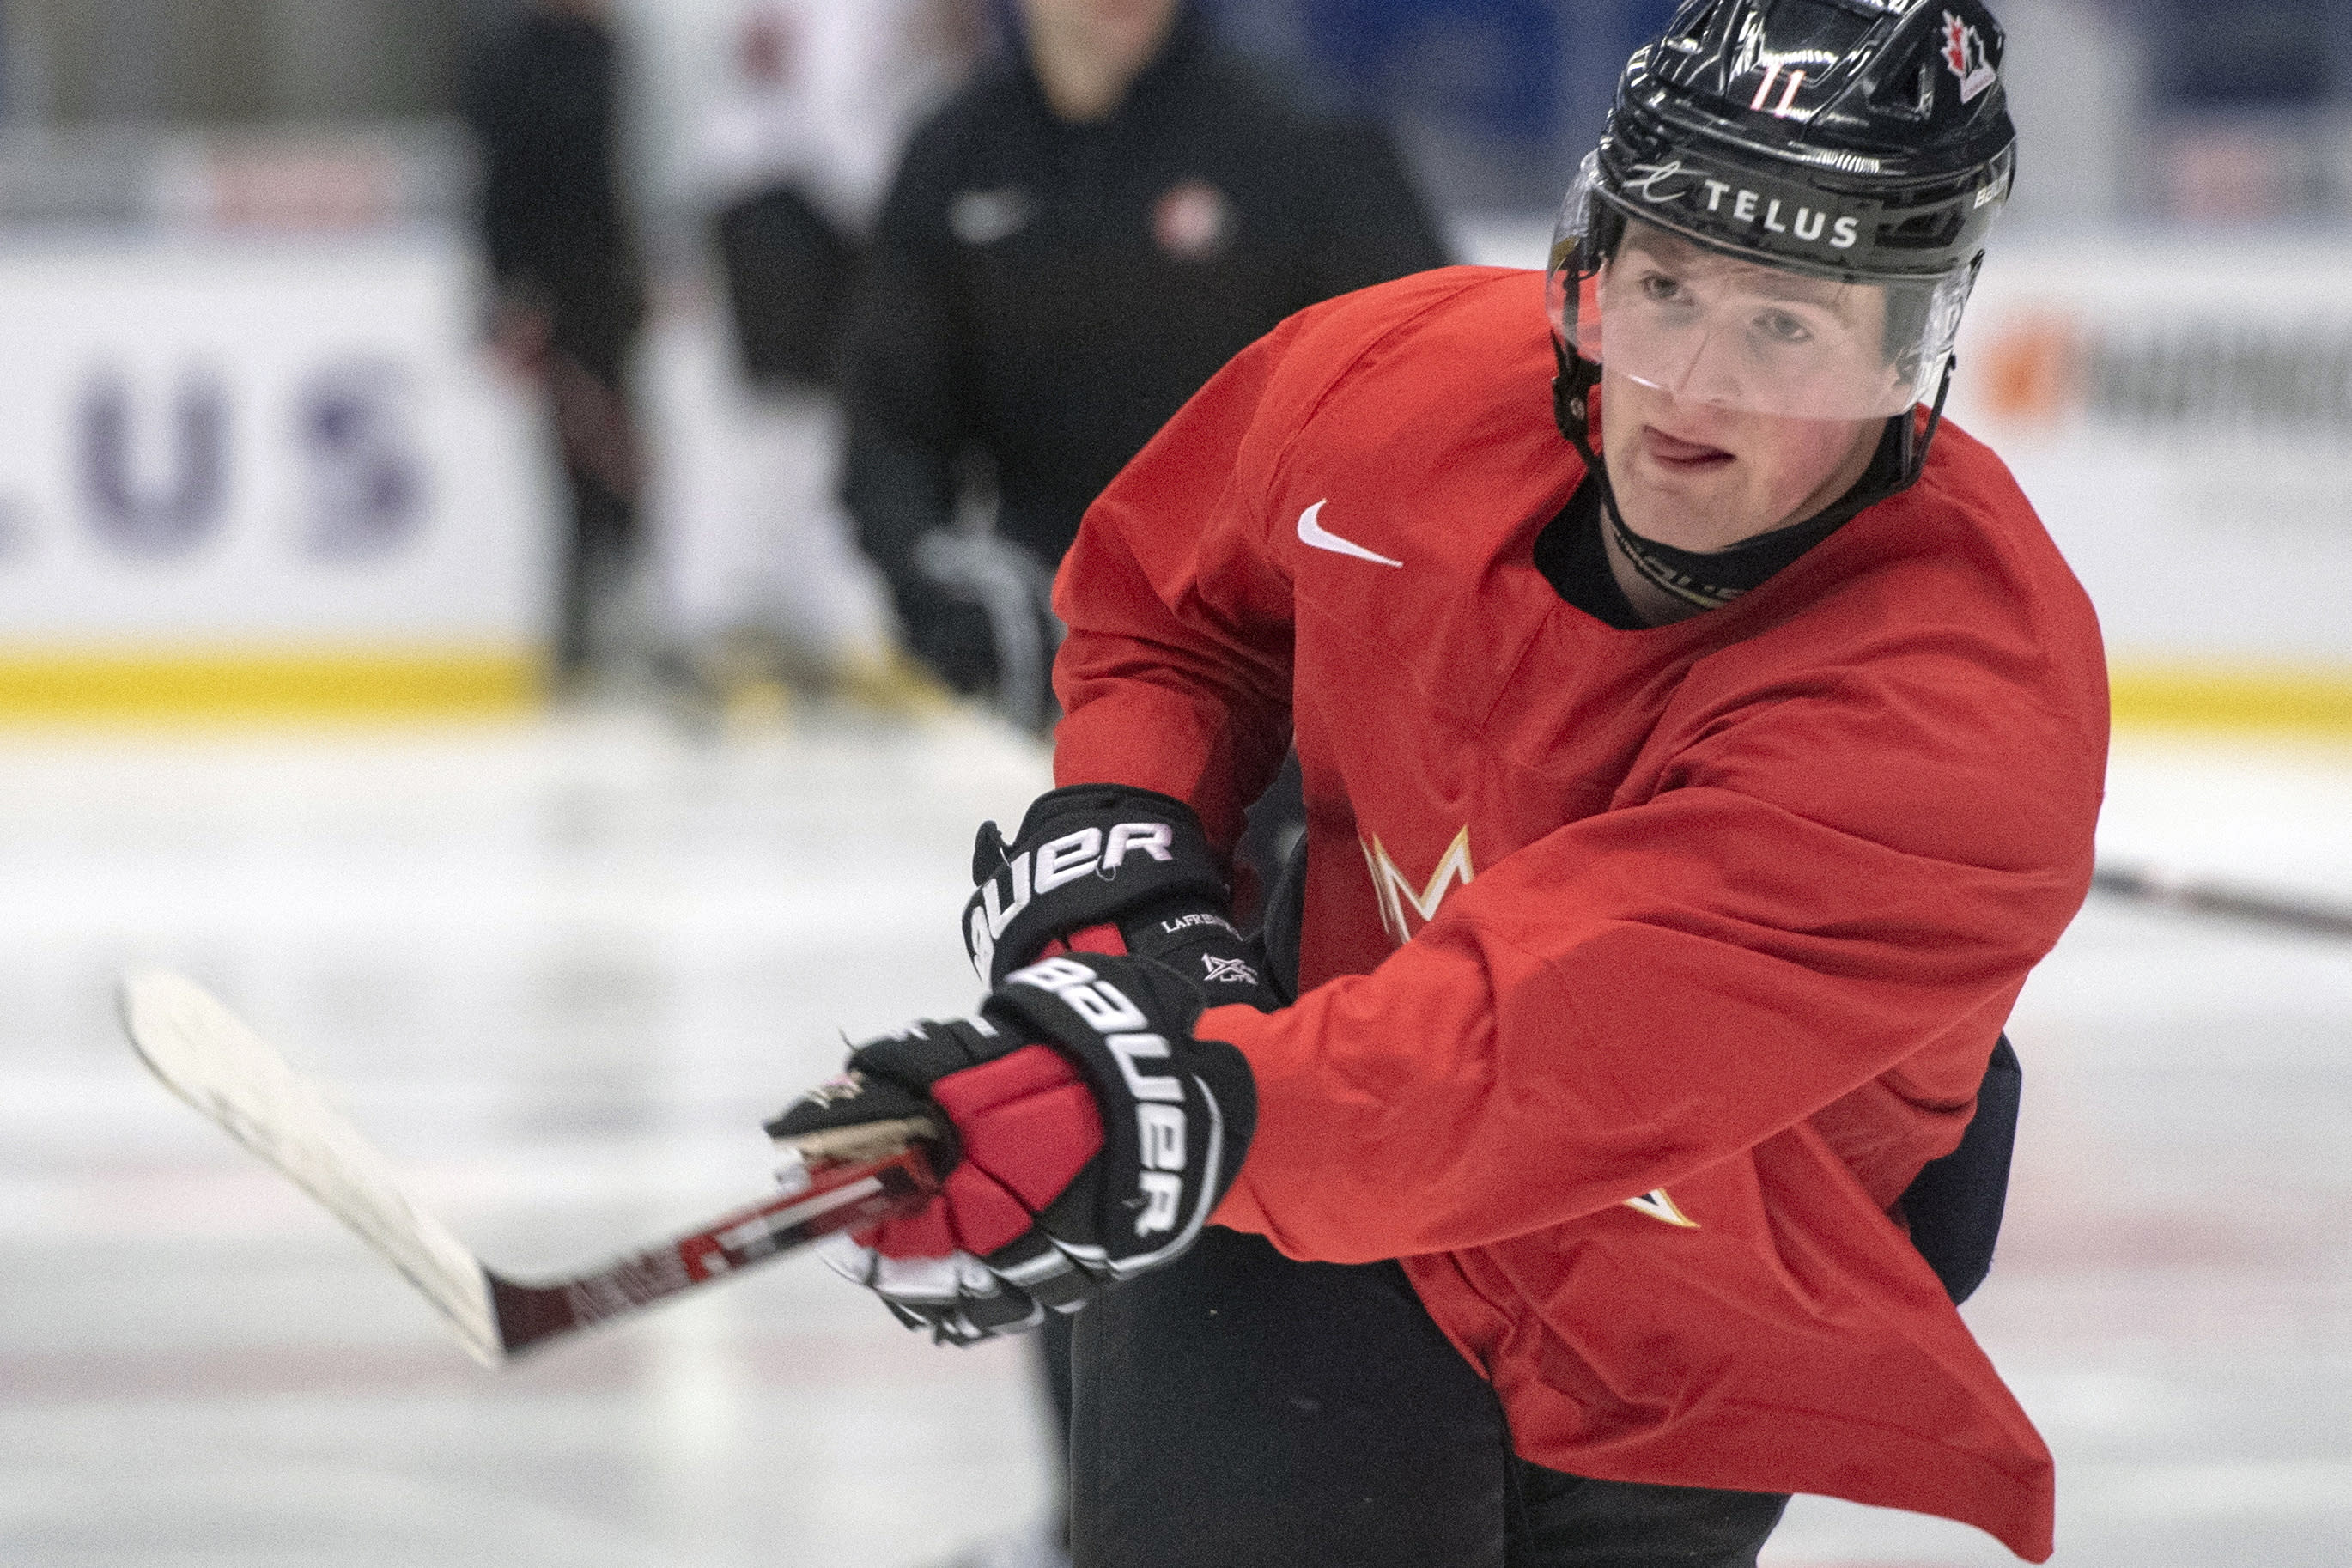 FILE - In this Jan. 1, 2020, file photo, Canada's Alexis Lafreniere shoots during the team's practice at the World Junior Hockey Championships in Ostrava, Czech Republic. The New York Rangers might be on the clock in owning the No. 1 pick in the NHL draft on Tuesday, Oct. 6. That, and the prospect of selecting Quebec star forward Alexis Lafreniere, doesn't mean the still-retooling Rangers will be anywhere closer to being a contender, team president John Davidson cautions. (Ryan Remiorz/The Canadian Press via AP, File)